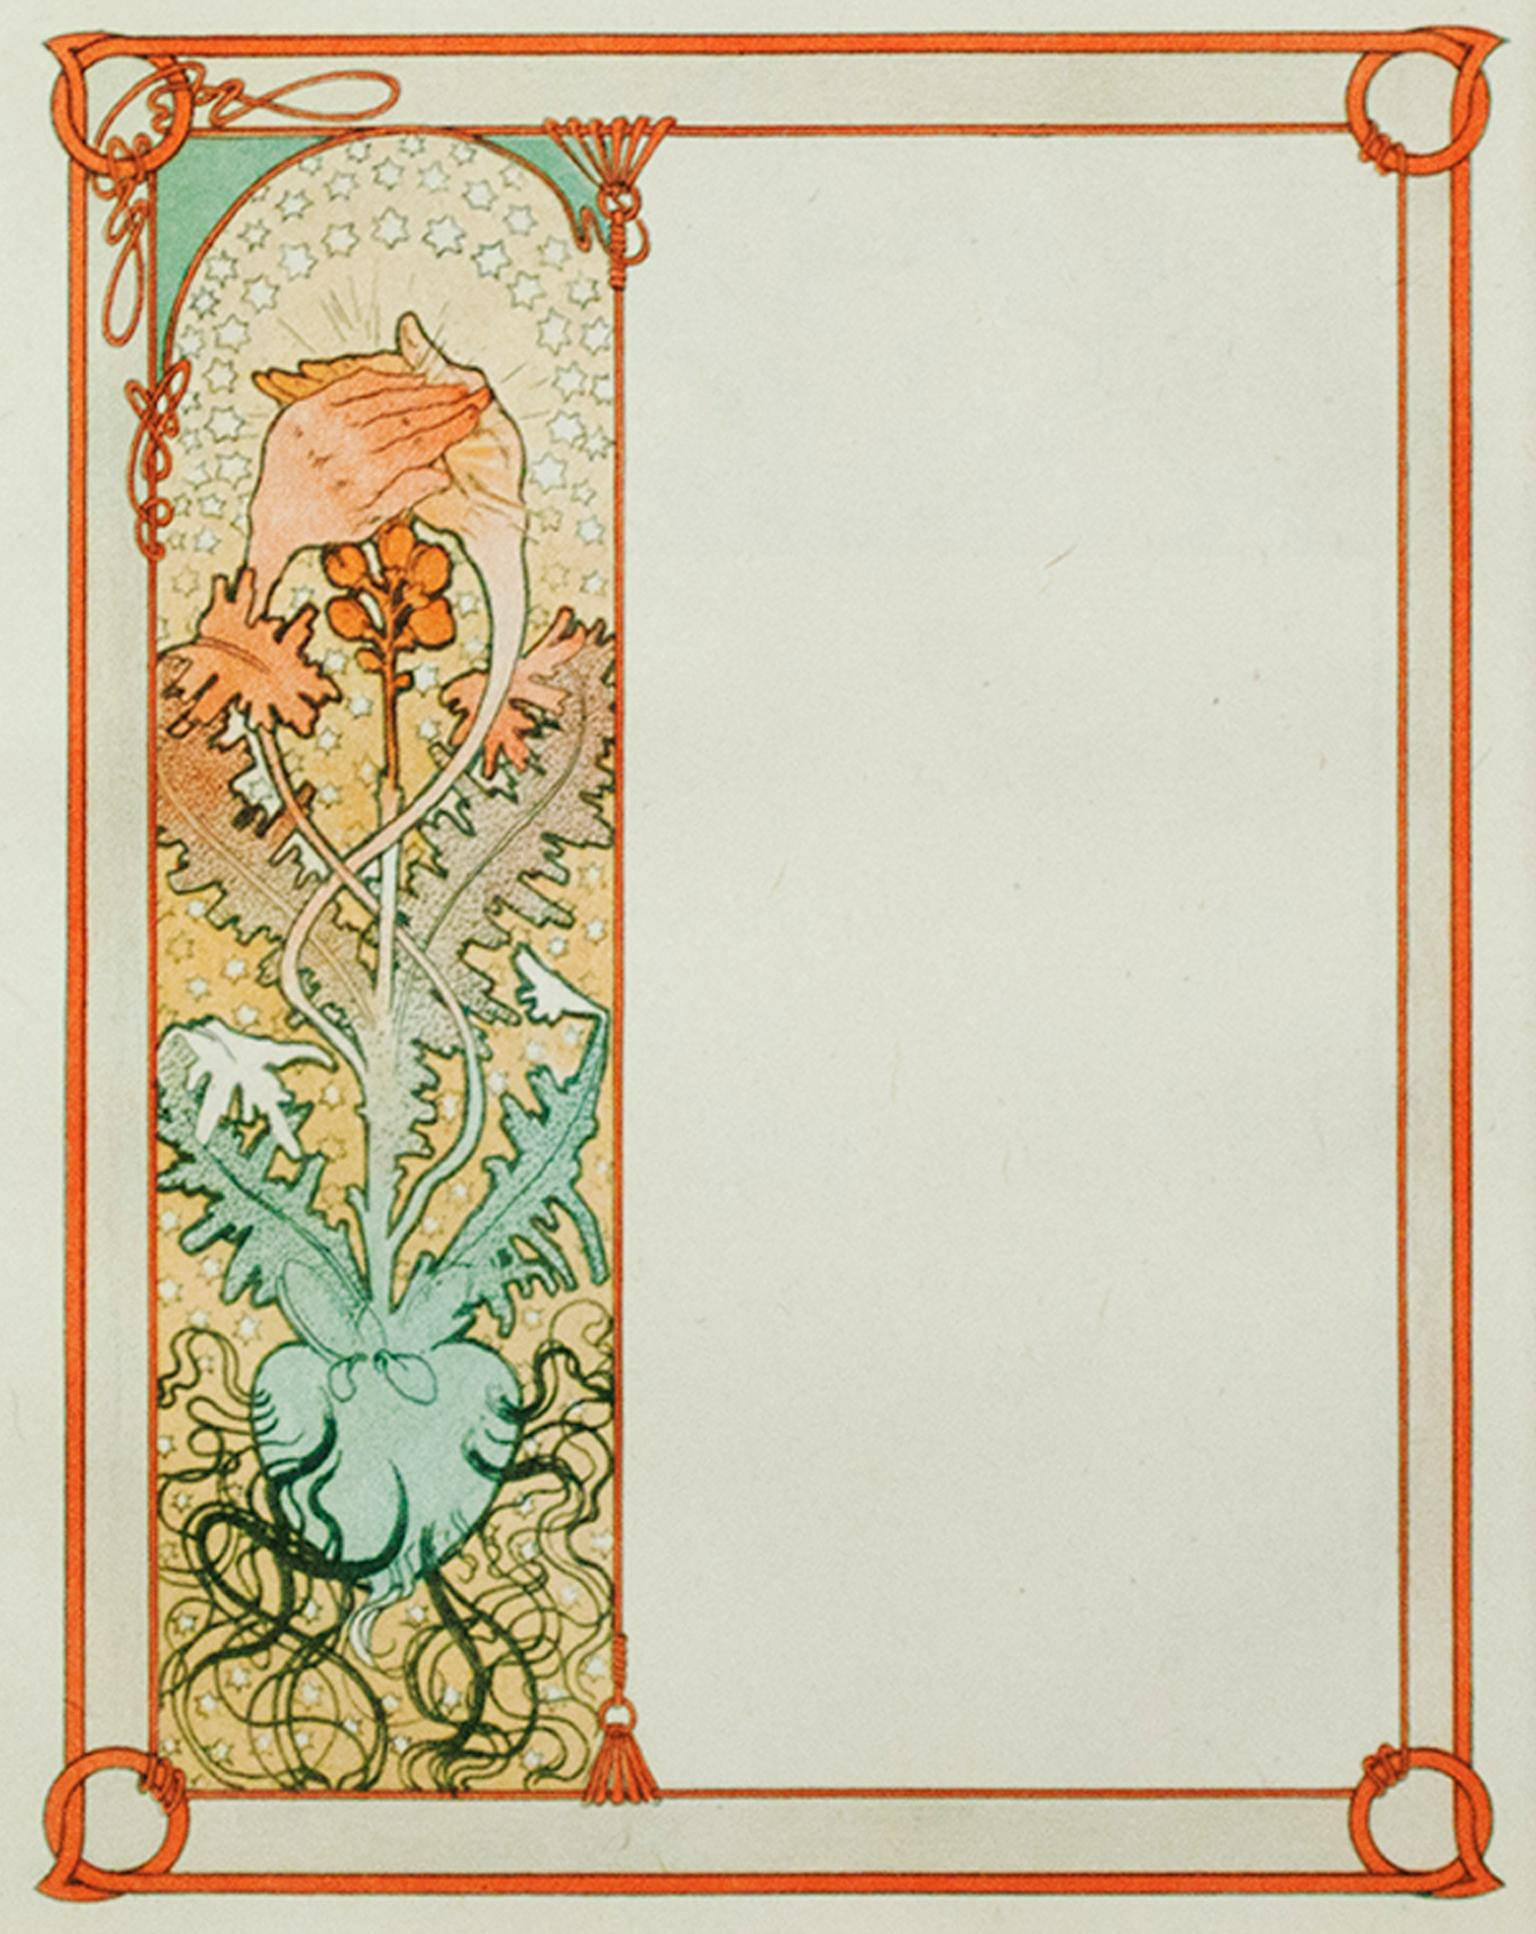 """""""The Prince Father's Heart"""" and """"Jaufre's Feared Affection"""" by Alphonse Mucha"""